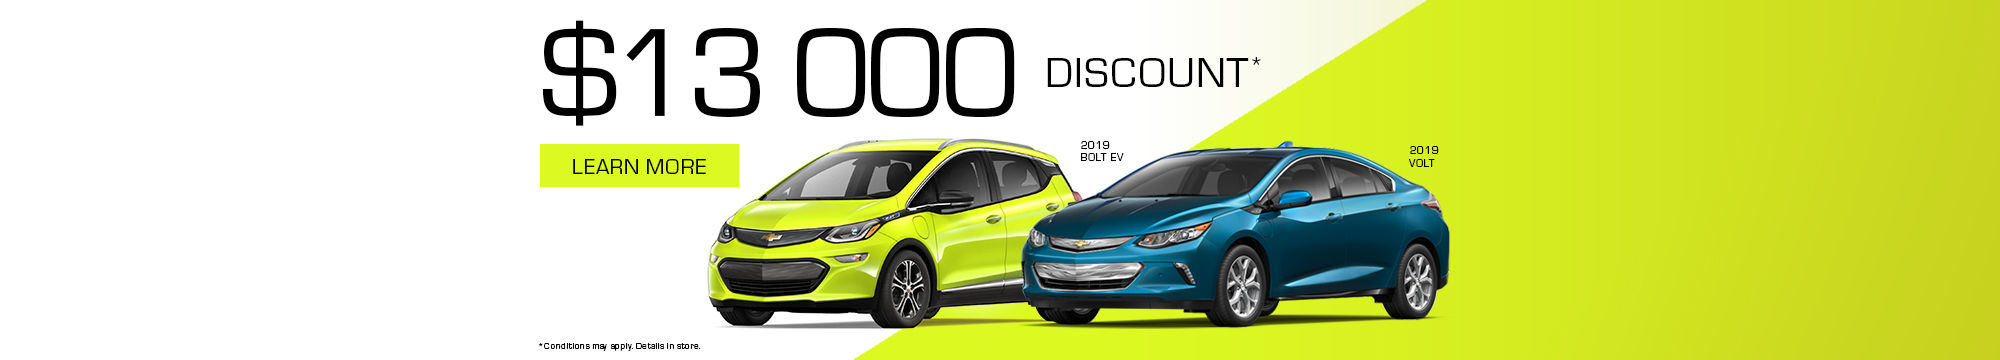 Electric discount